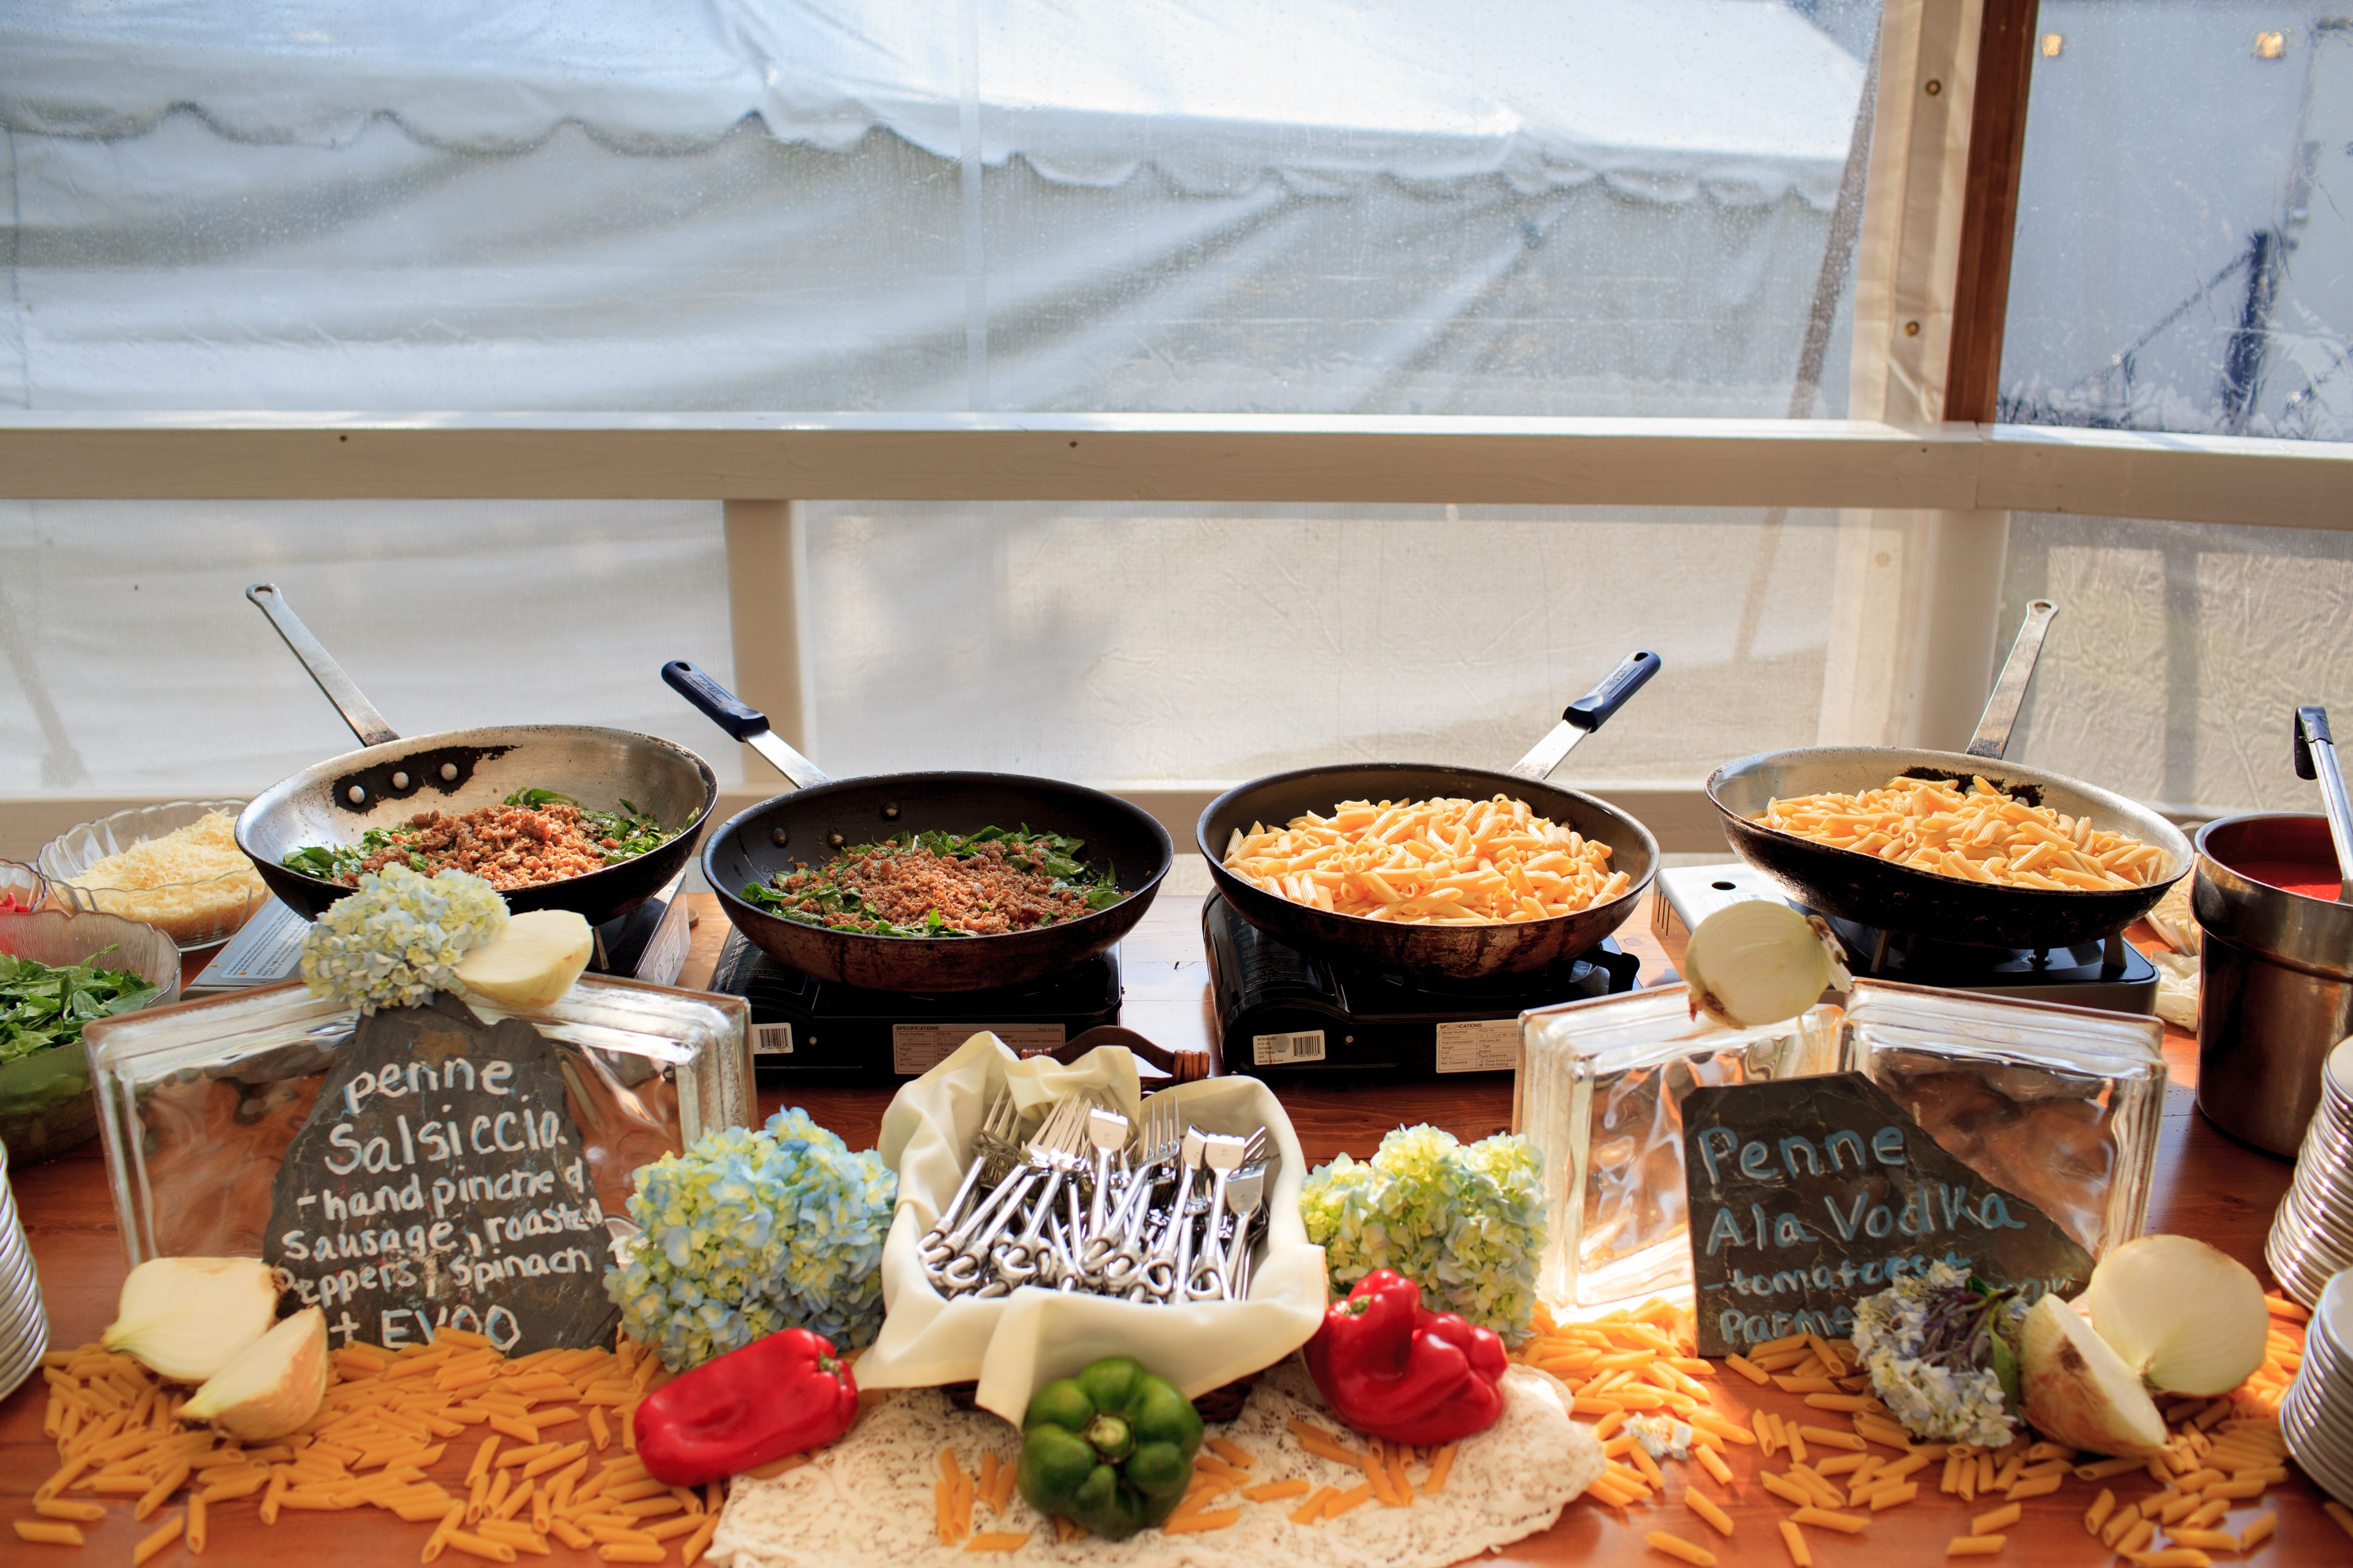 Chef Attended Pasta Station -Thanks LT Photography